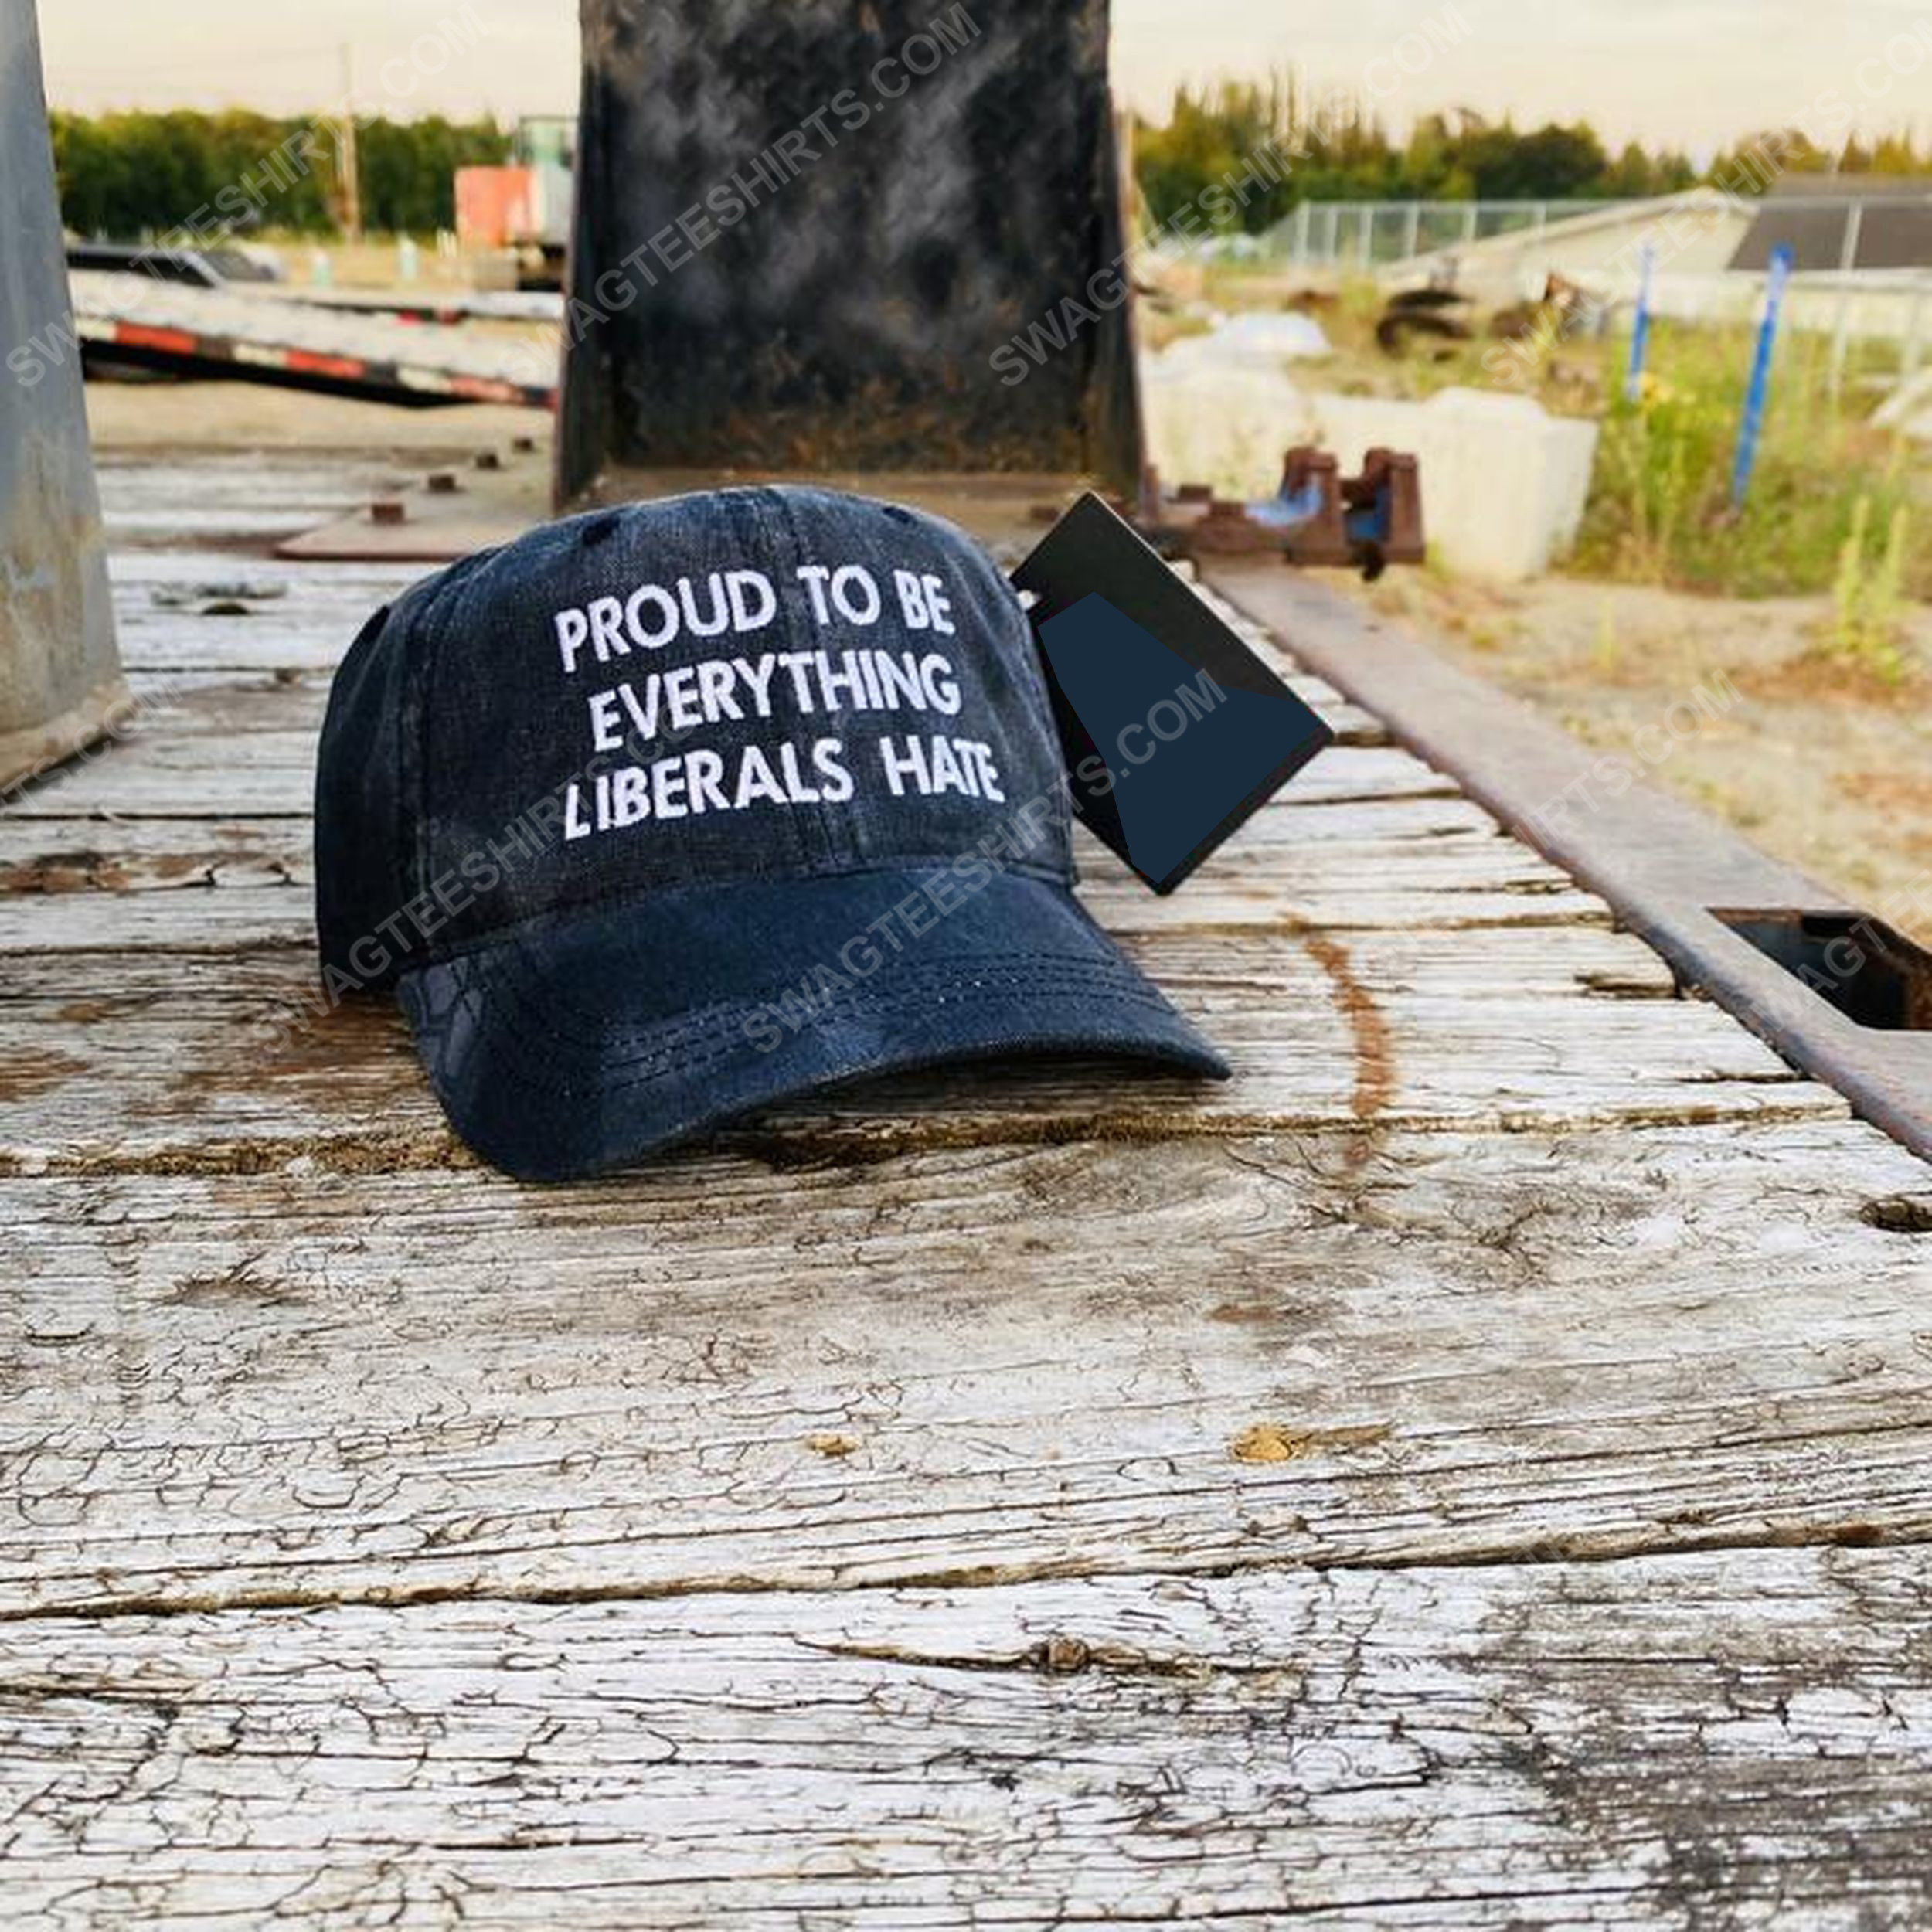 Proud to be everything liberals hate full print classic hat 1 - Copy (2)